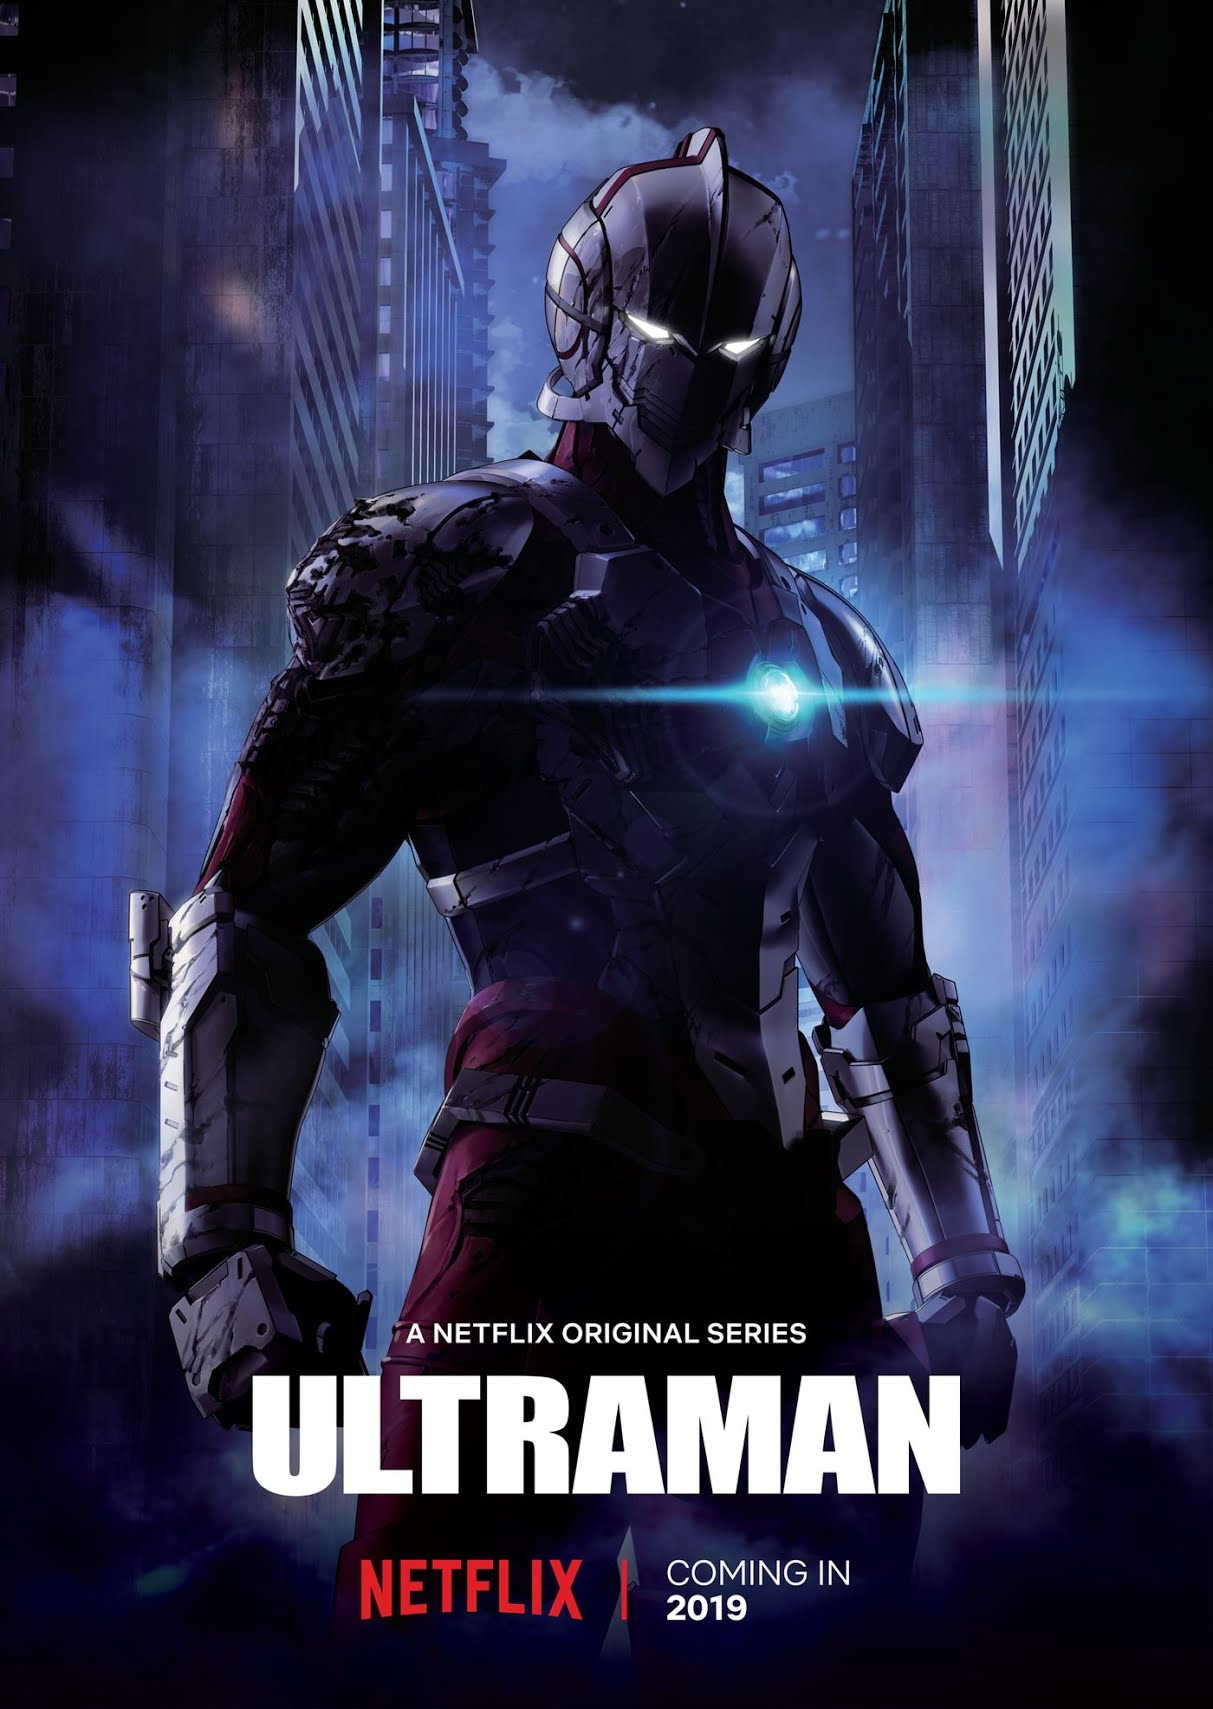 Netflix Ultraman anime series poster featuring the hero in armor